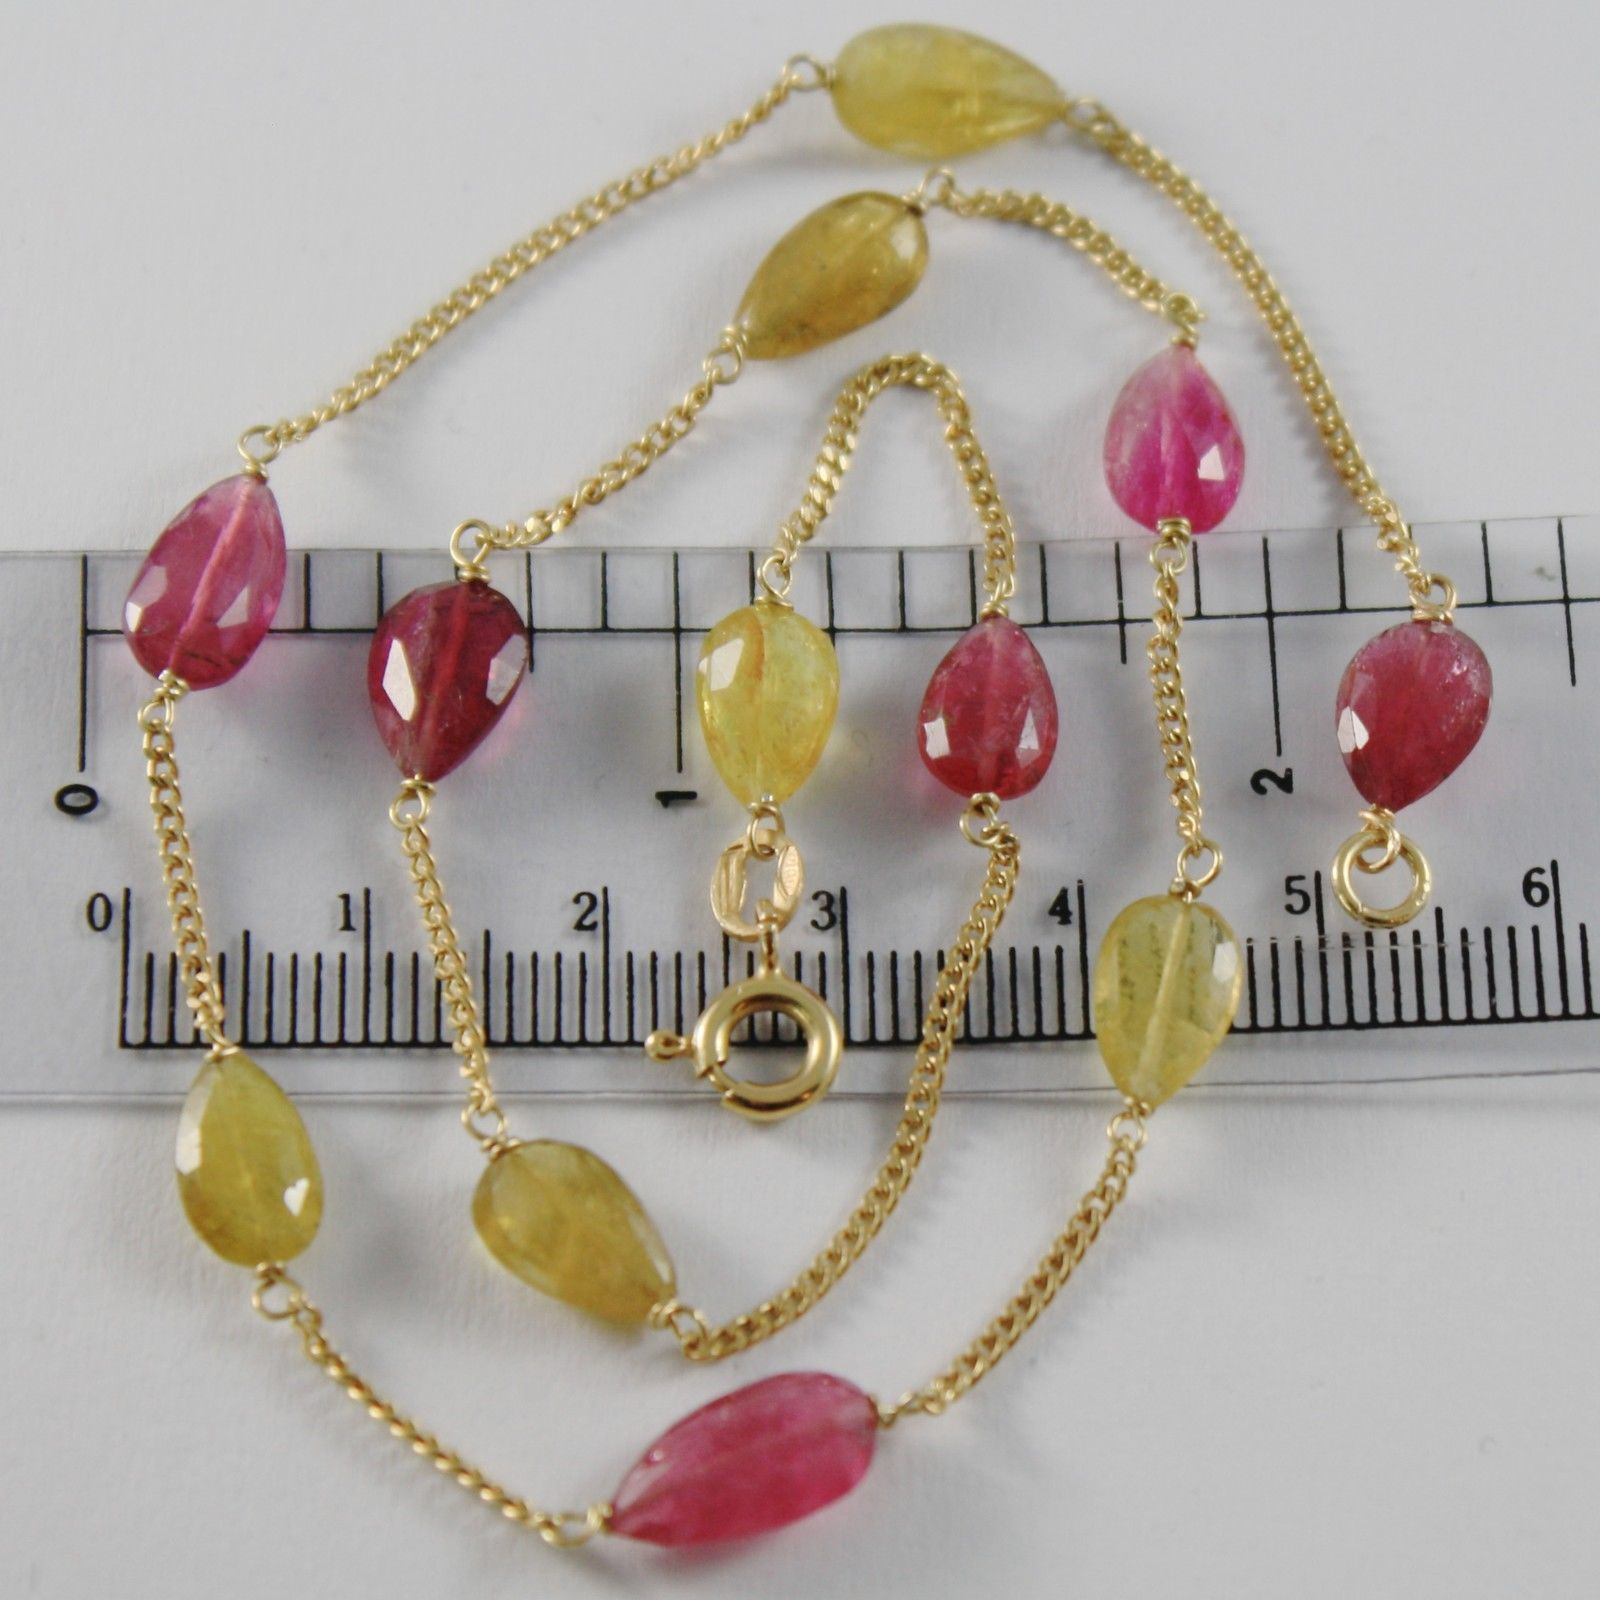 18K YELLOW GOLD MINI GOURMETTE CHAIN NECKLACE WITH DROP TOURMALINE MADE IN ITALY